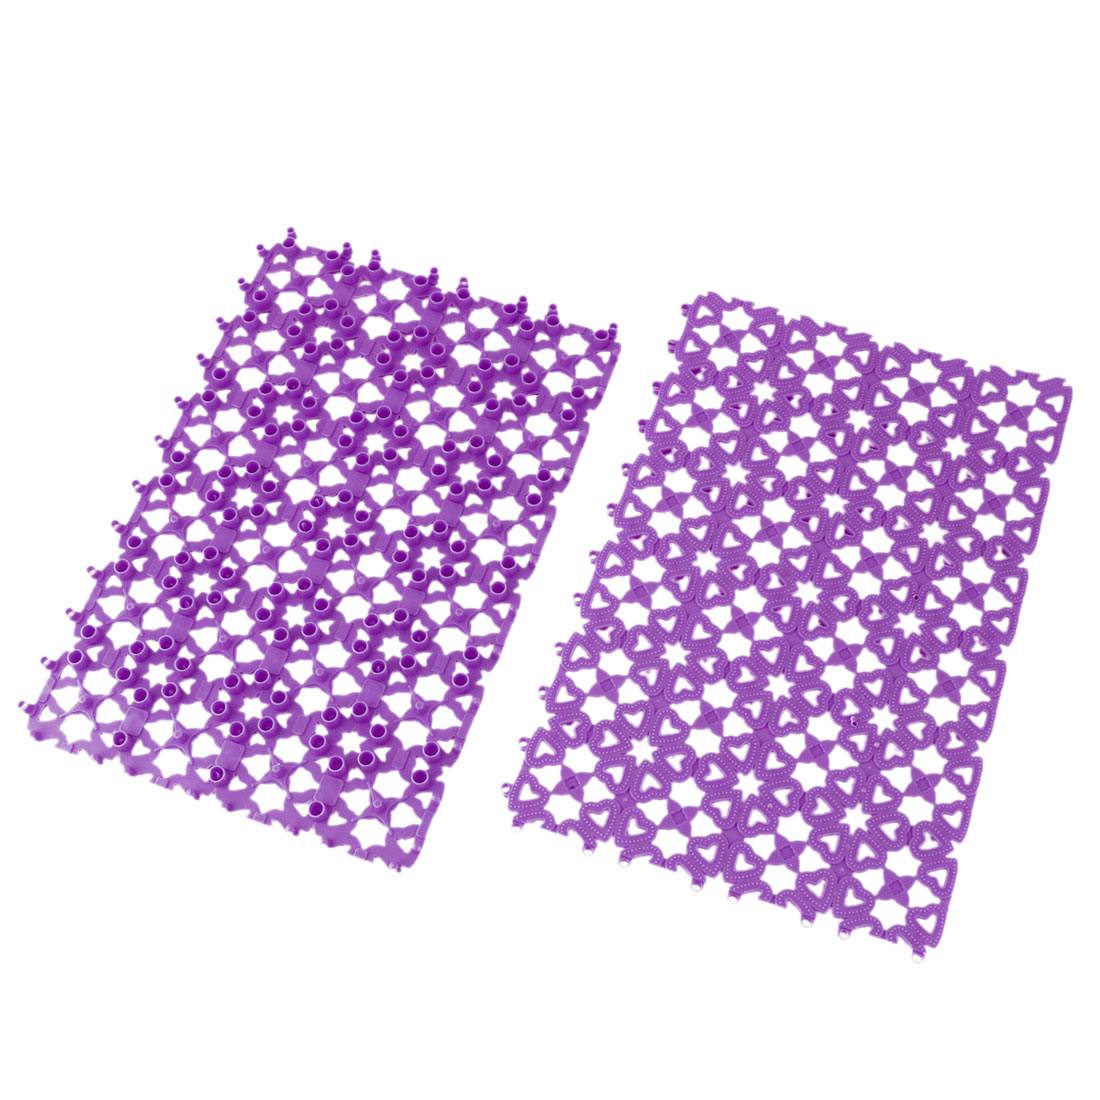 Bathroom Plastic Free Split Joint Water Resistant Anti-slip Shower Bath Mat Purple 2pcs